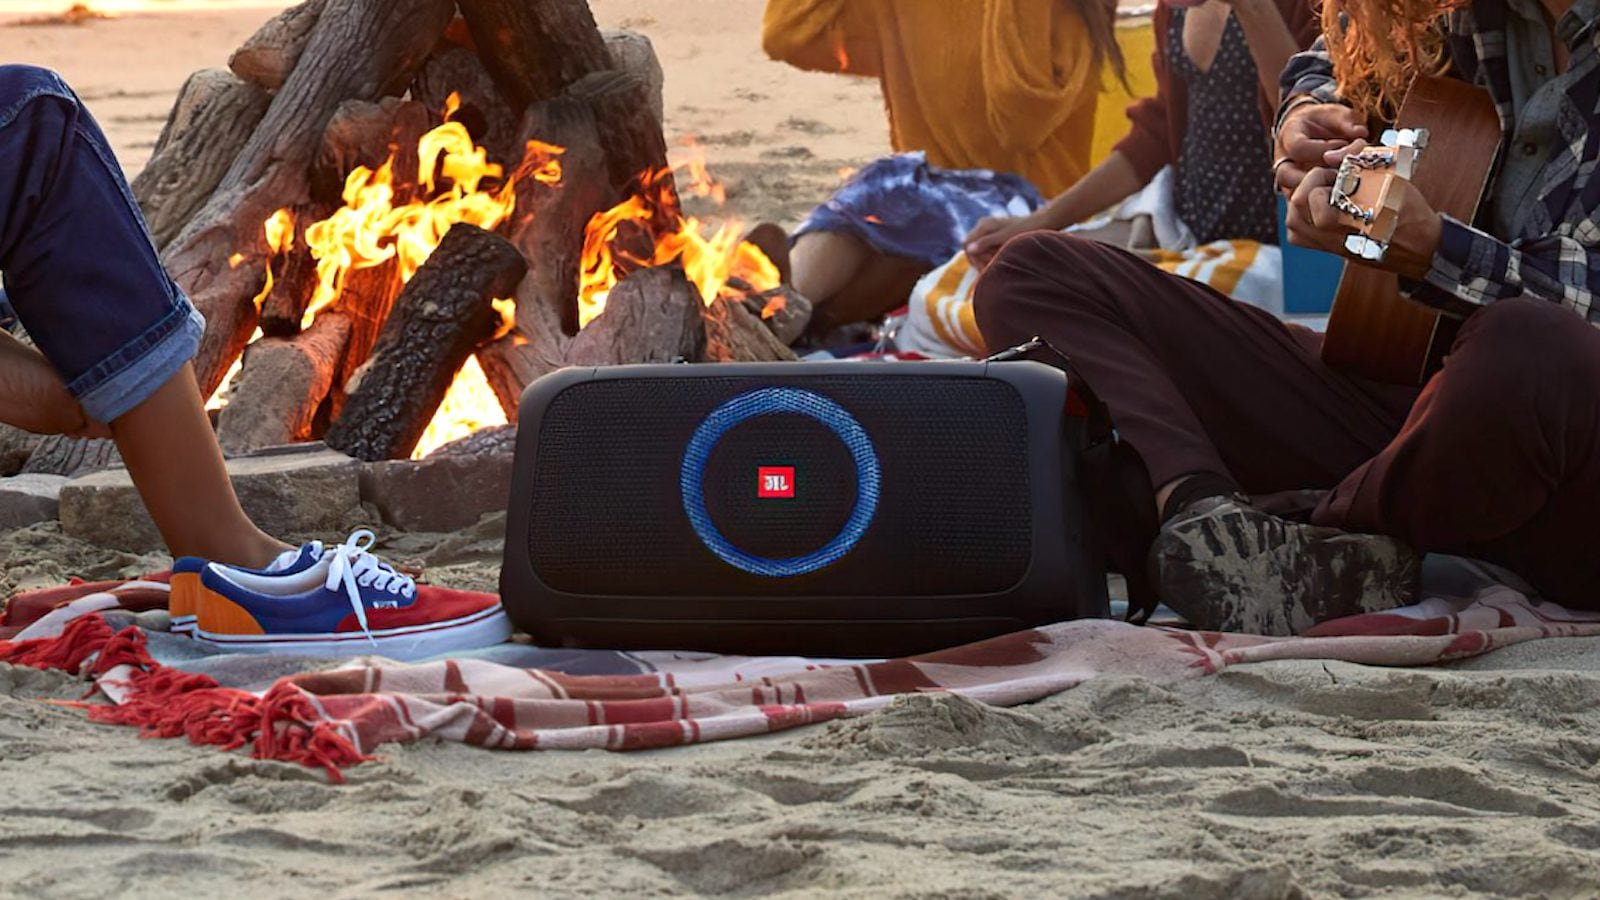 JBL PartyBox On-The-Go portable party speaker has integrated lights and a wireless mic